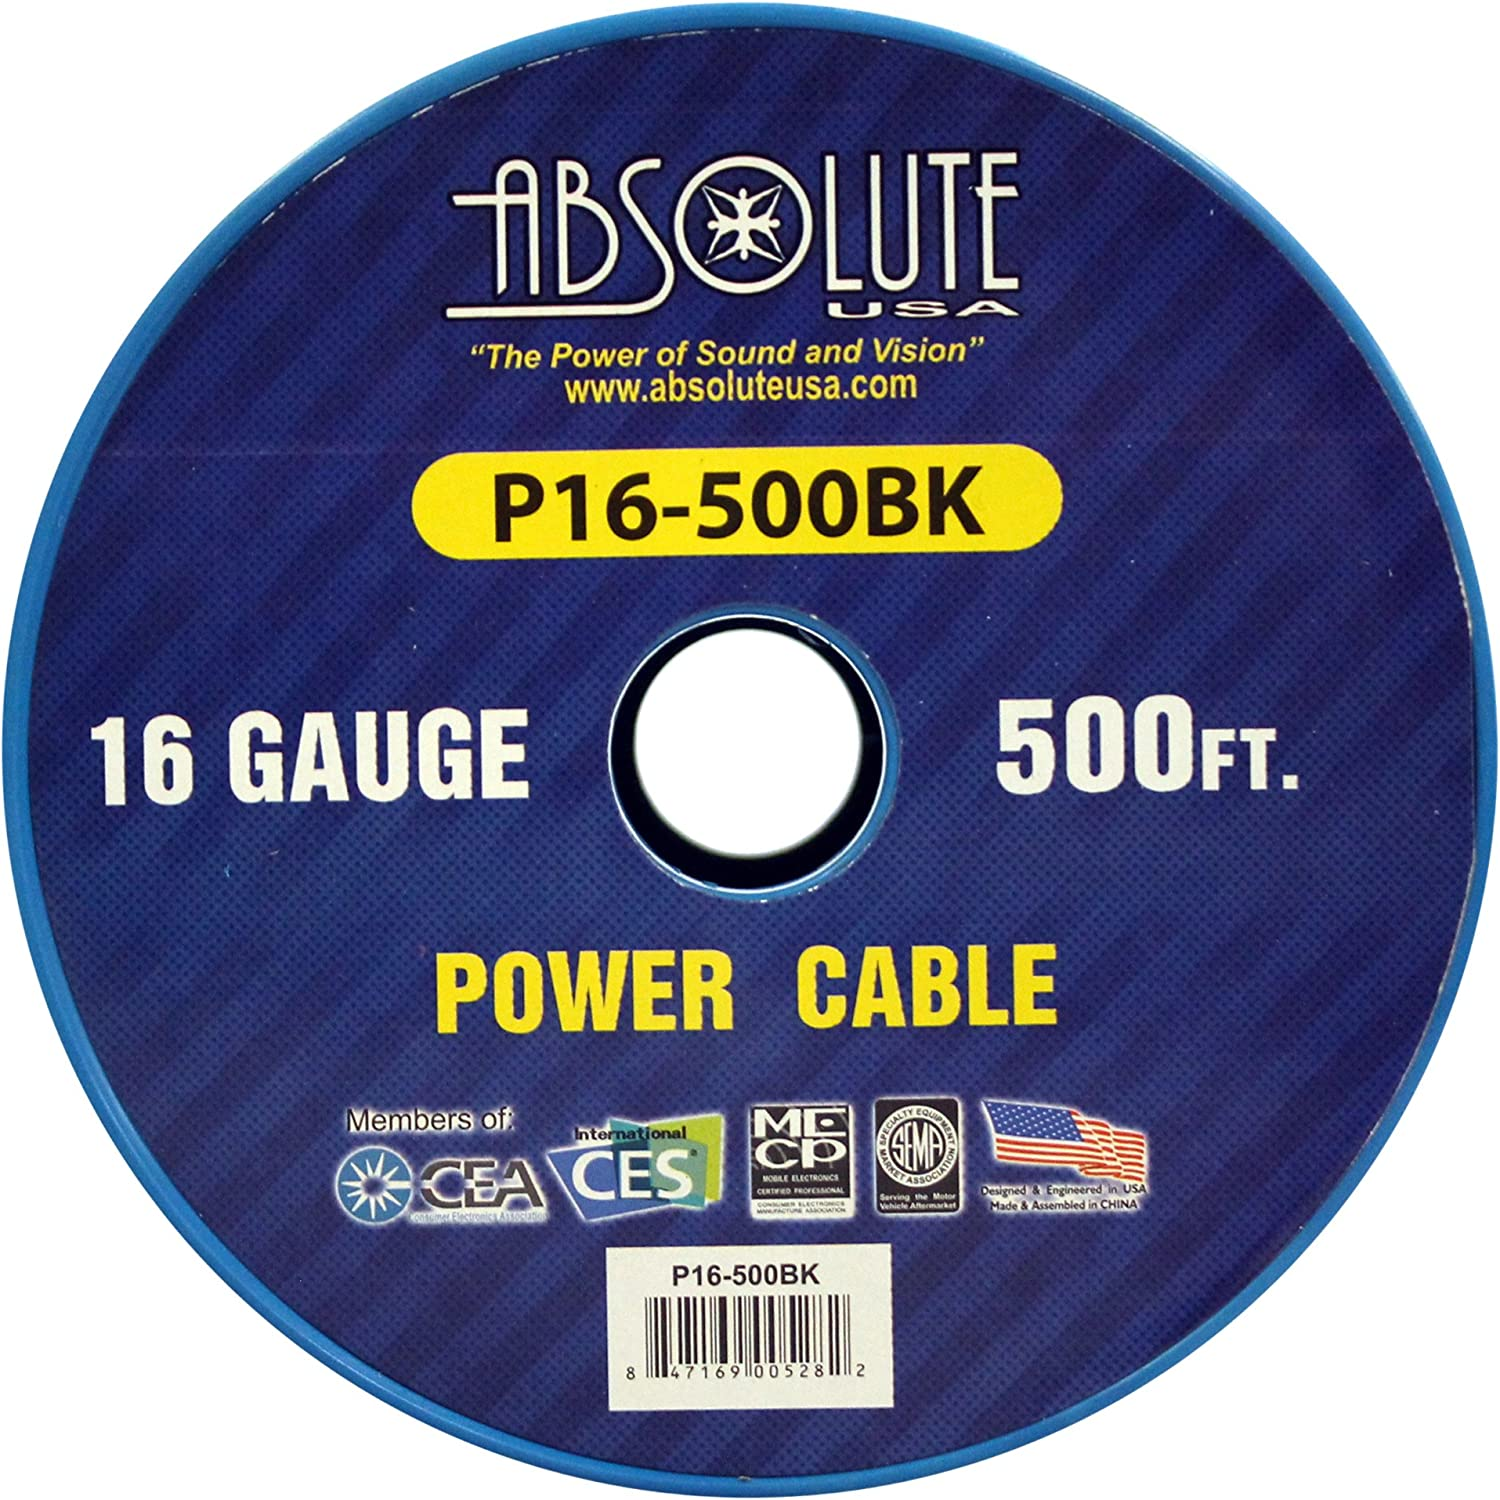 Absolute USA P16-500YE 16 Gauge 500-Feet Spool Primary Power Wire Cable Yellow